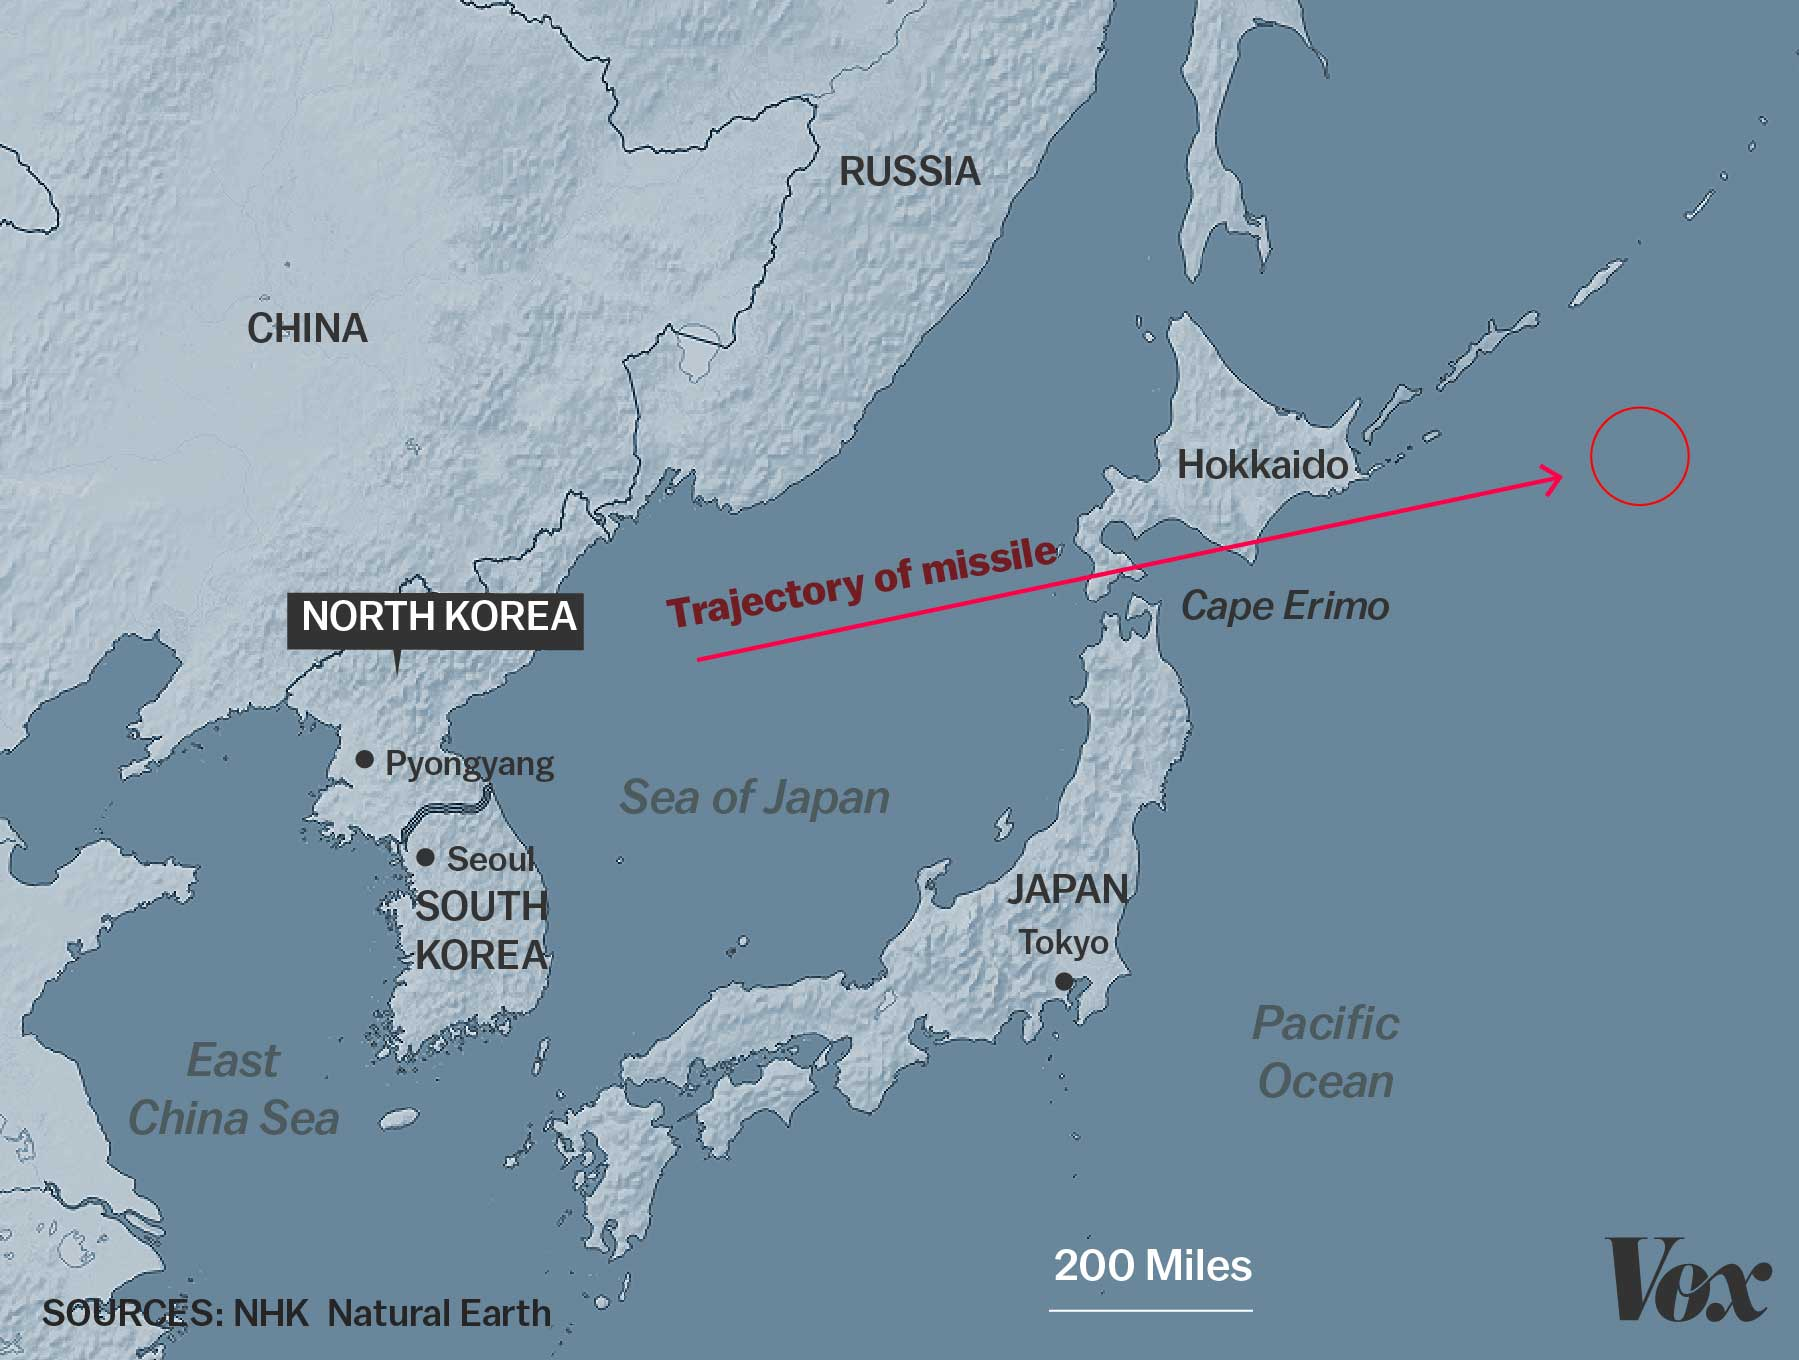 North Korea Just Launched A Missile Over Japan Vox - Japan map korea